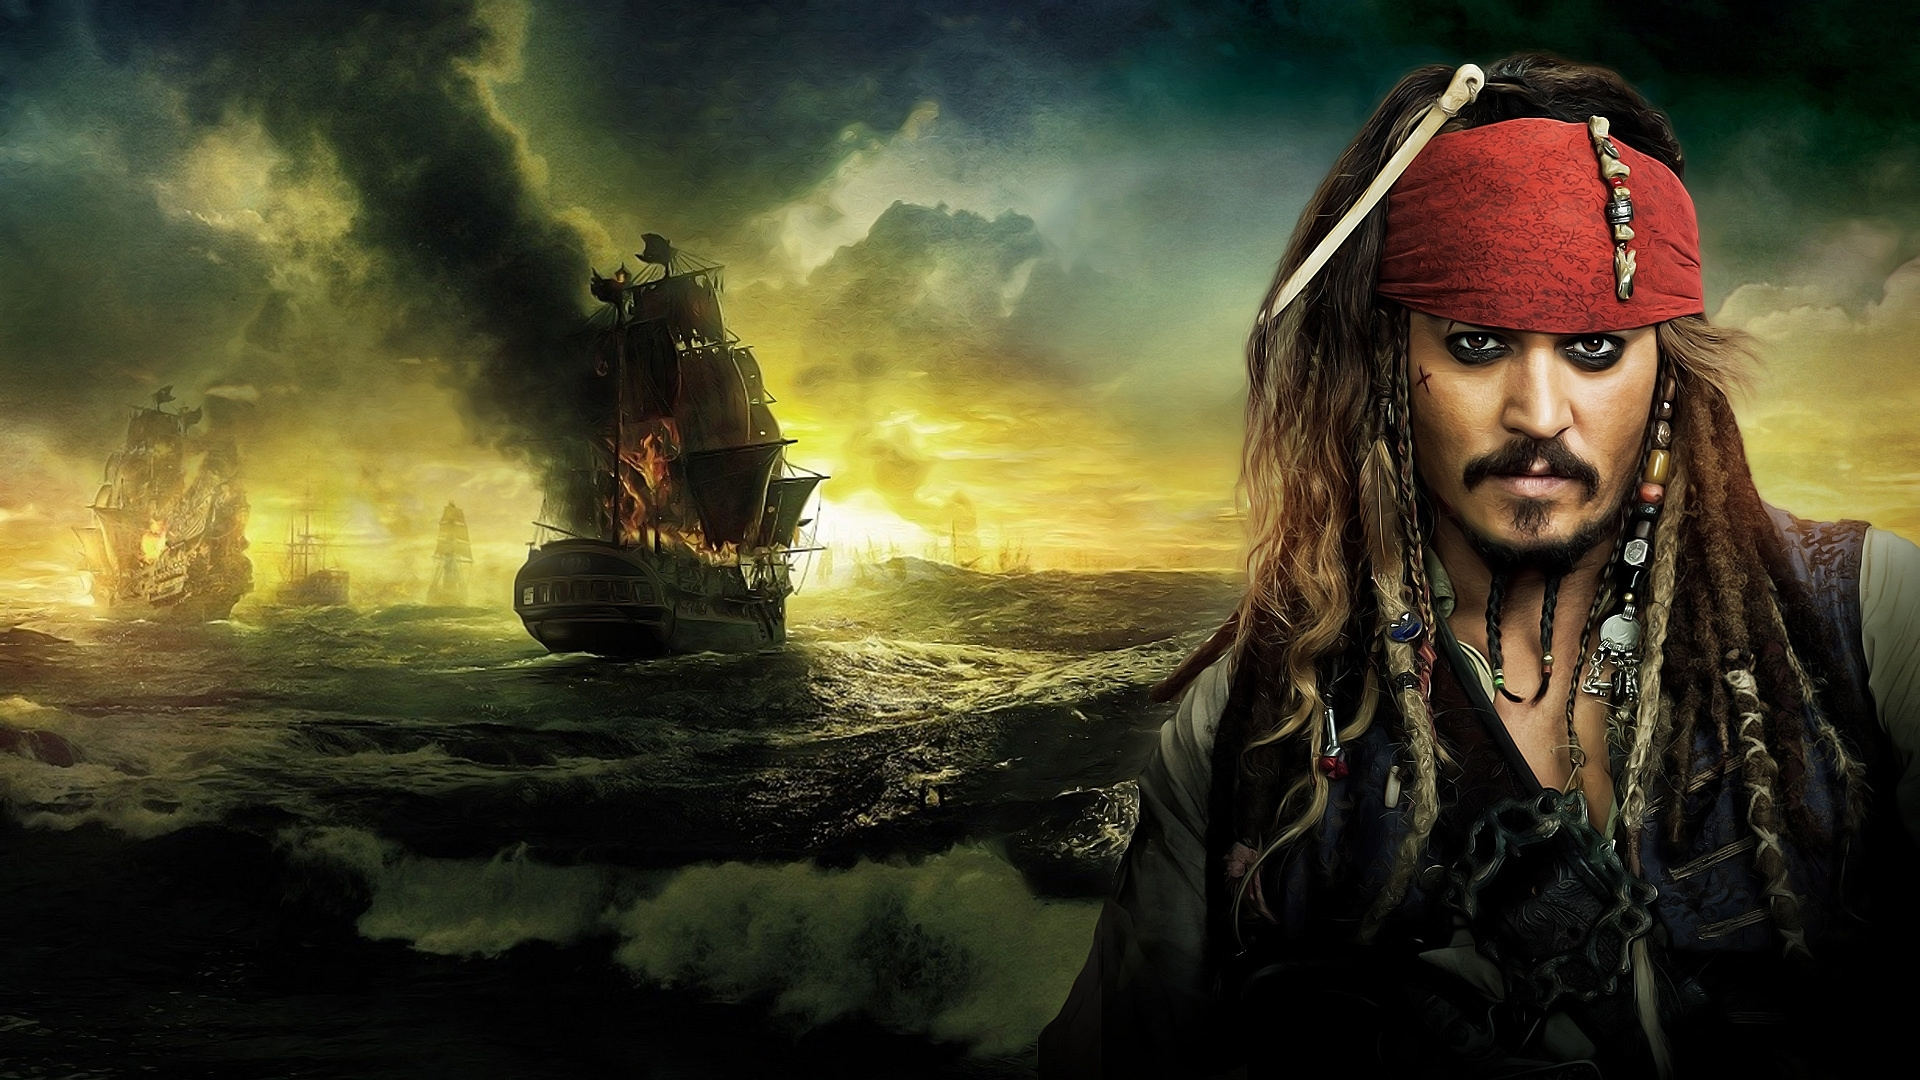 wallpaper johnny depp movie pirates of the caribbean with hd 1080p